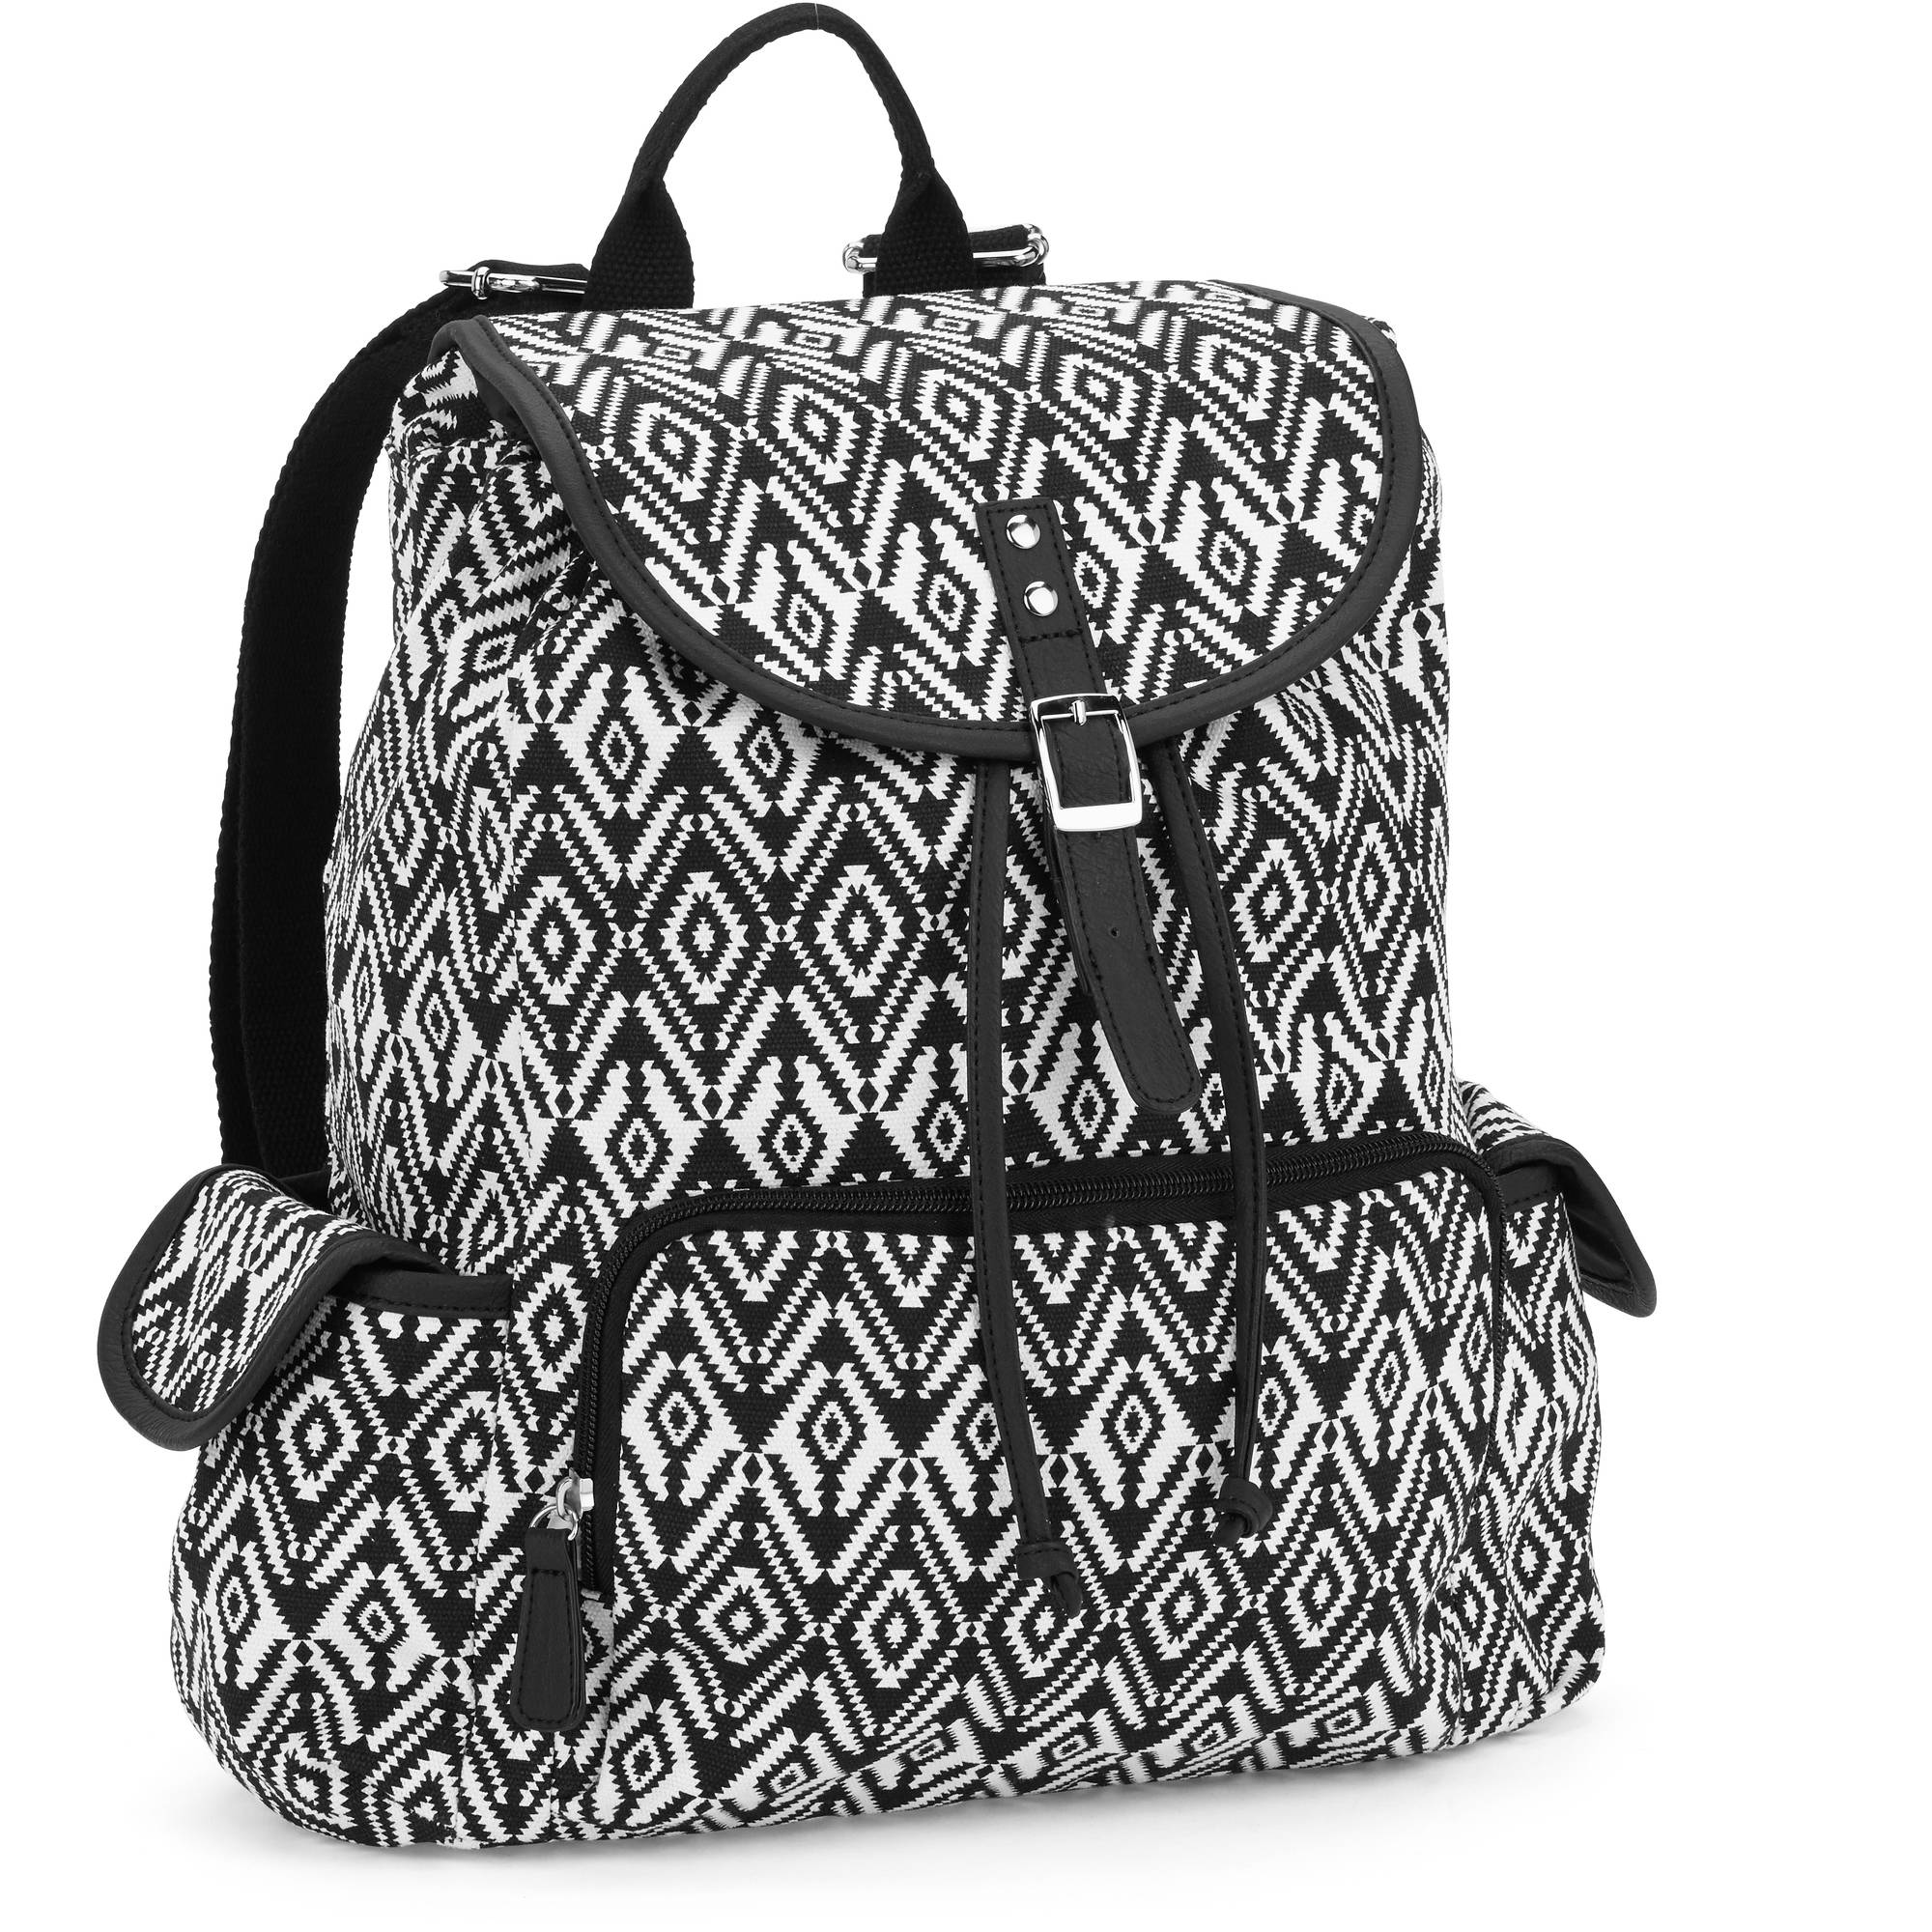 "No Boundaries 18"" Printed Canvas Buckle Flap Zip Pocket Backpack"